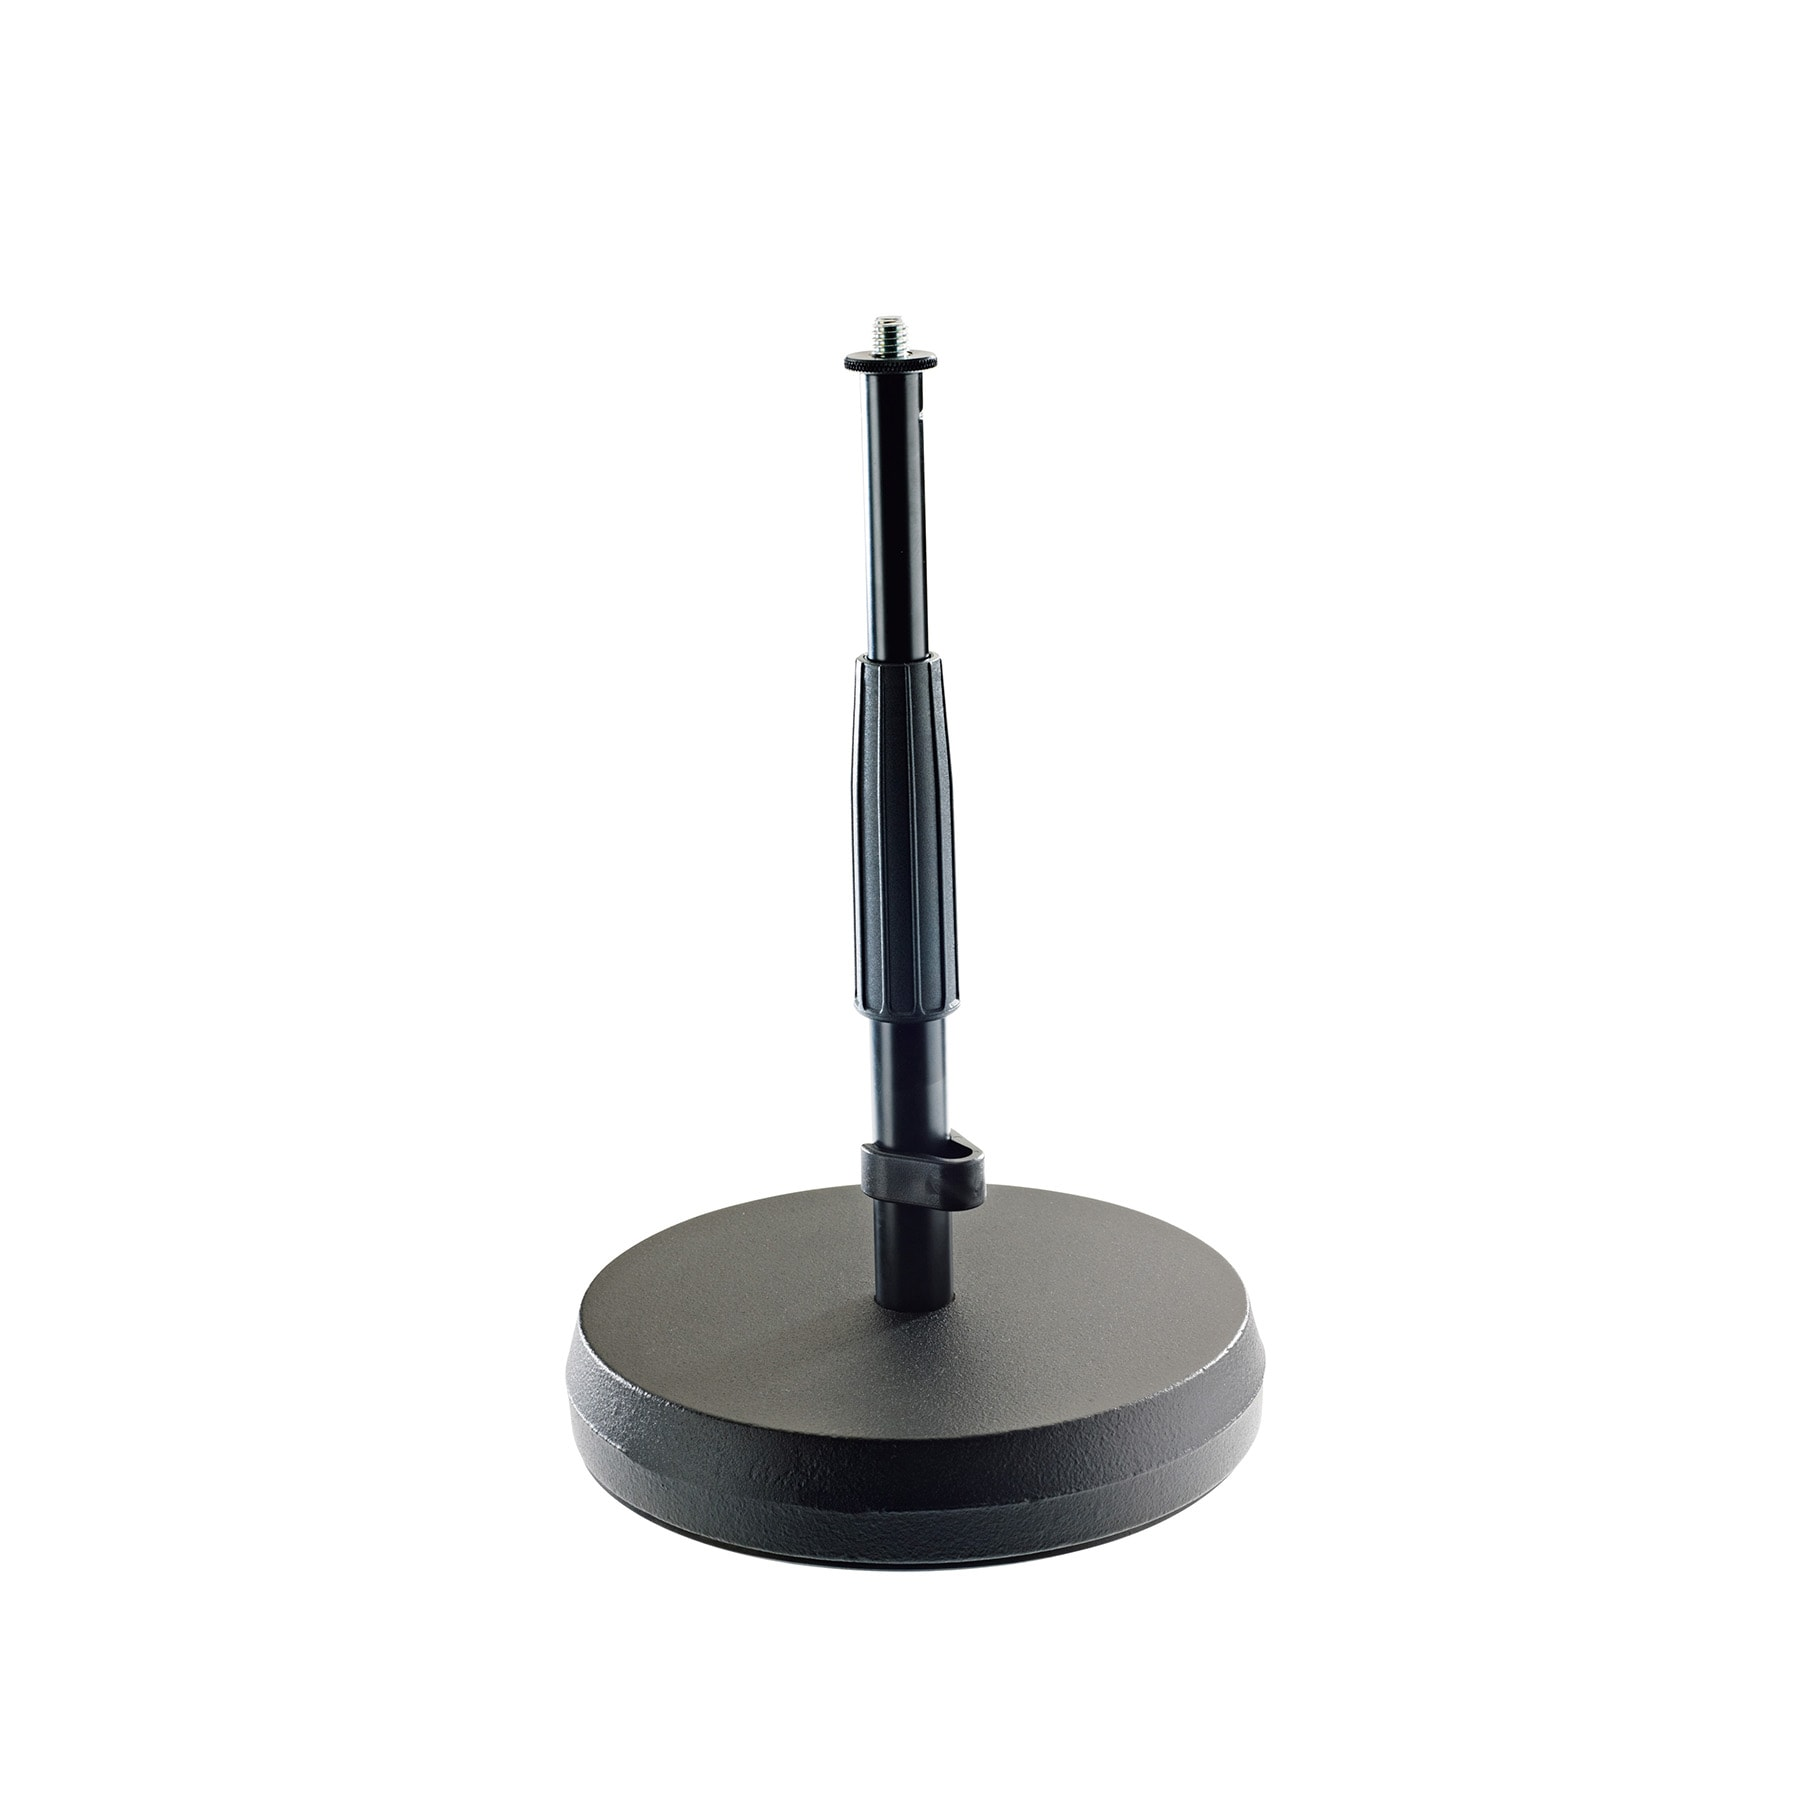 KM23325 - Table- /floor mic stand